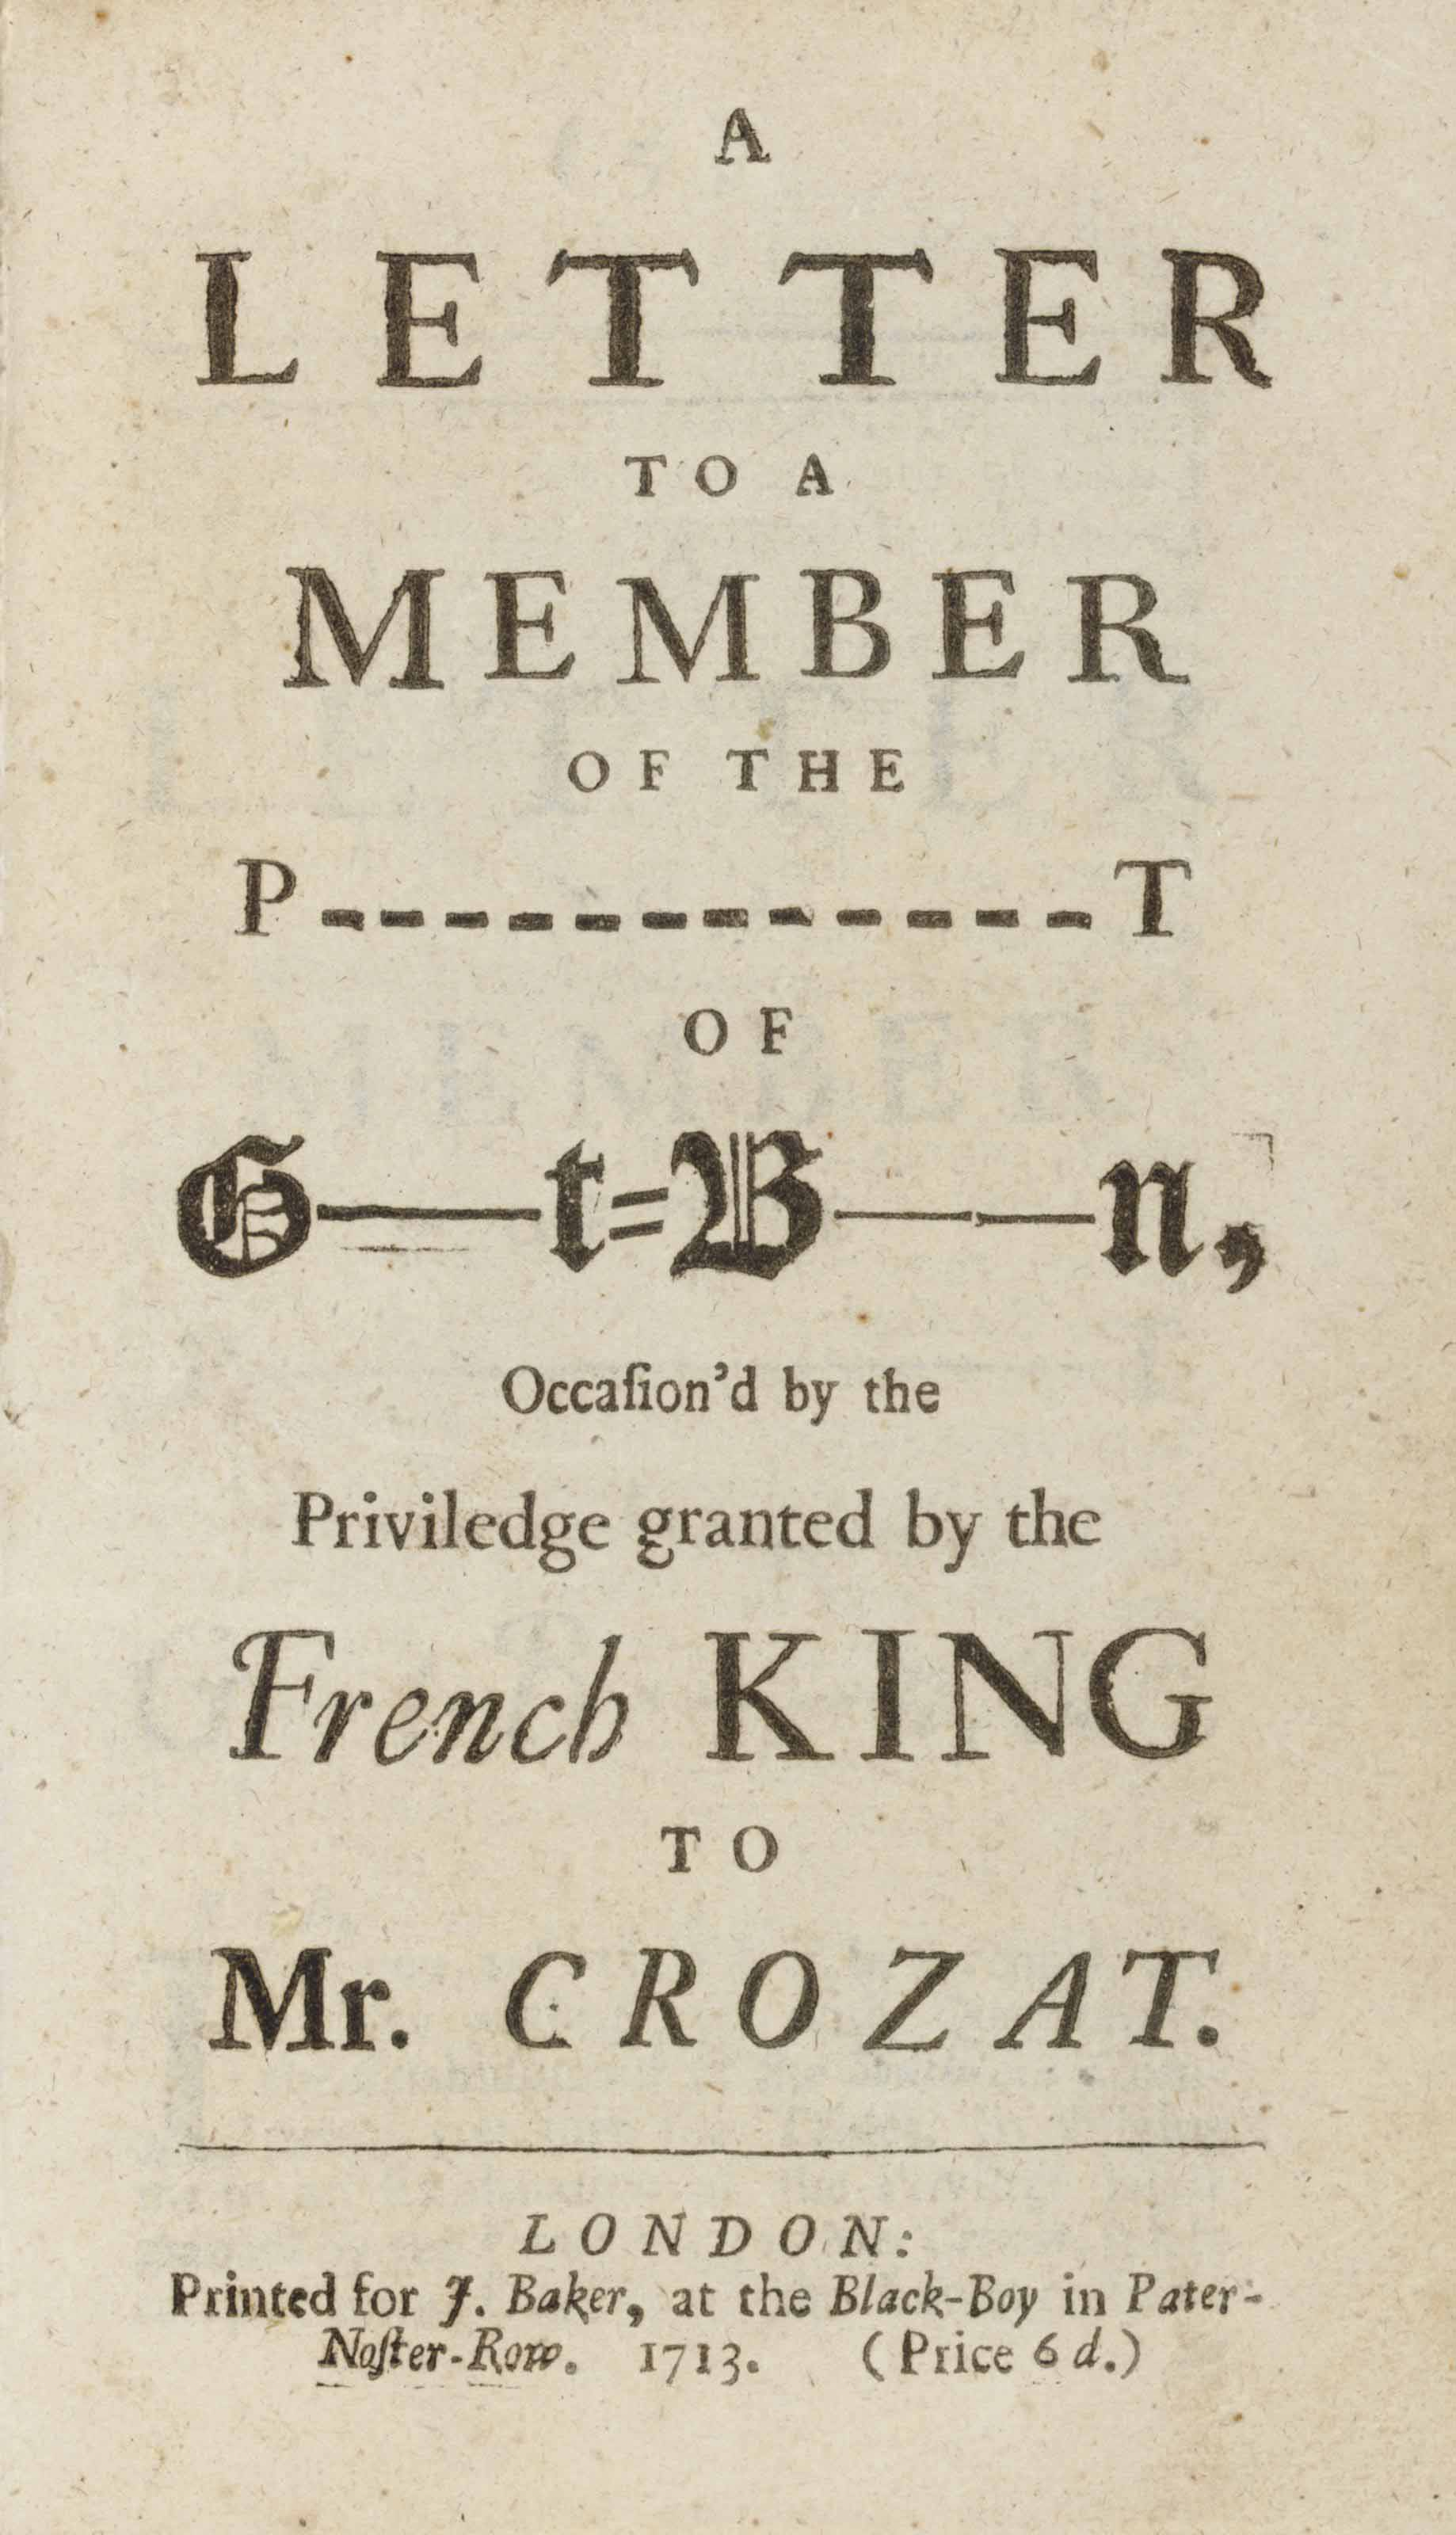 [CROZAT, Anthony]. A Letter to a Member of the P--t of G--t= B--n, Occasioned by the Priveledge granted by the French King to Mr. Crozat. London: J. Baker, 1713.